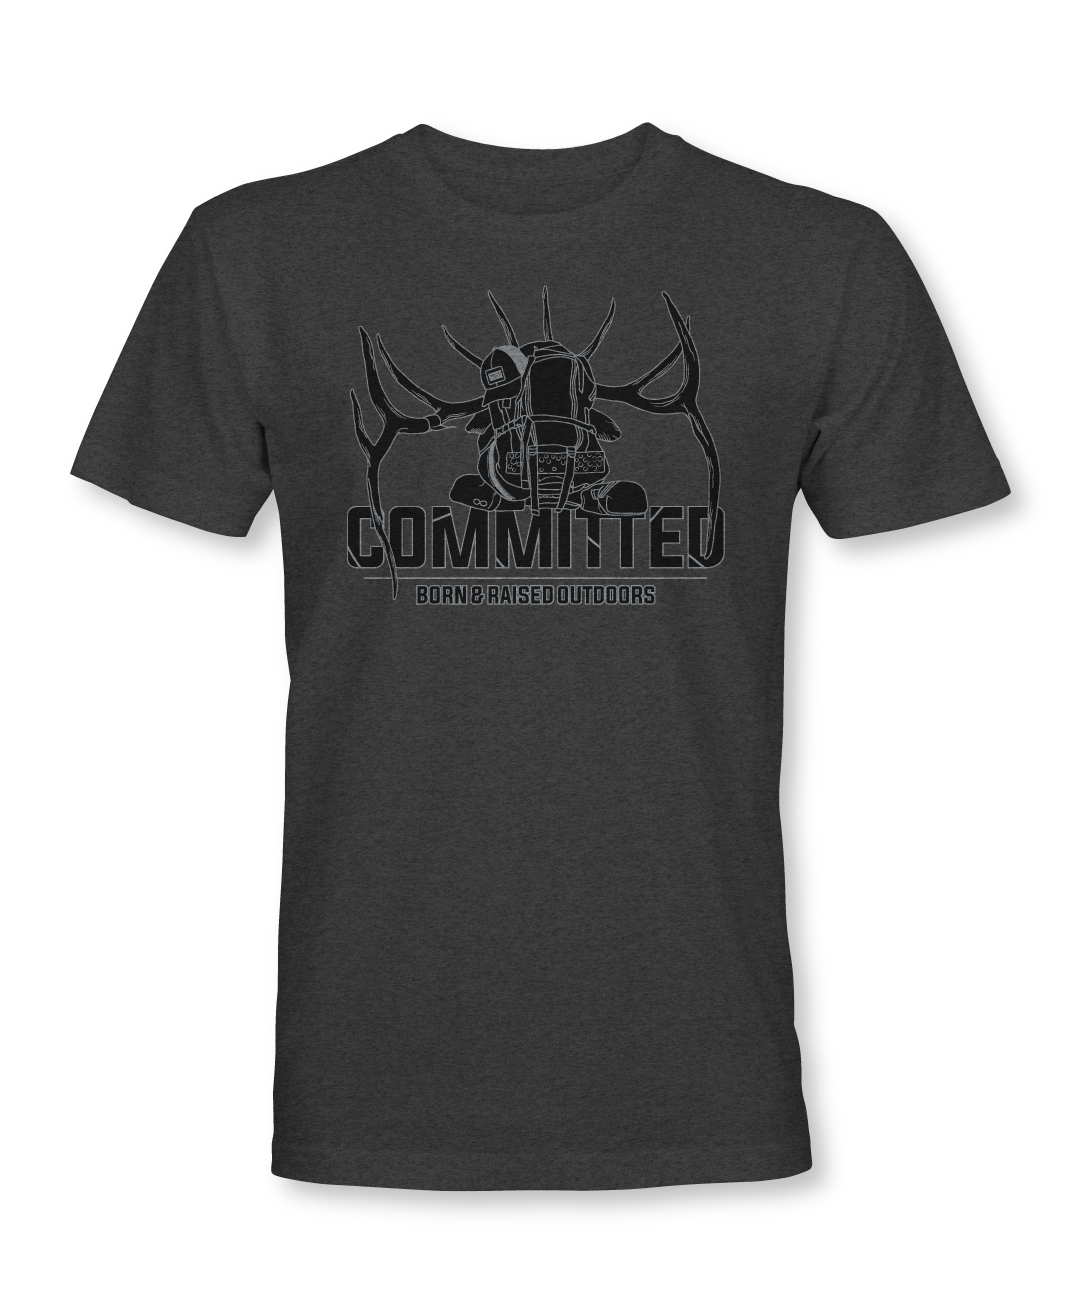 """COMMITTED"" T-SHIRT"